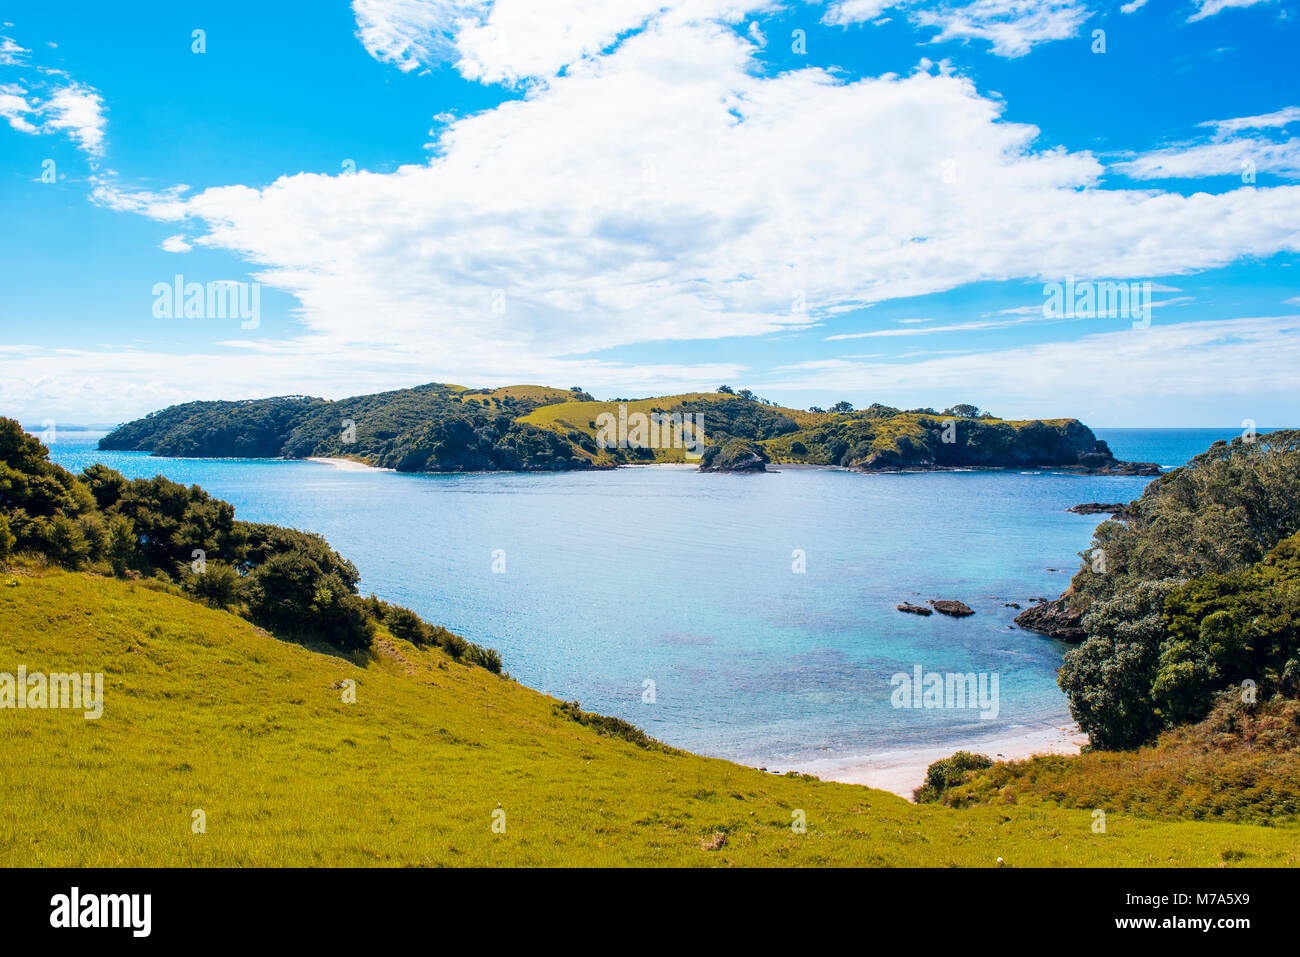 View from Urupukapuka Island in the Bay of Islands, North Island, New Zealand, looking towards Waewaetorea Island - Stock Image